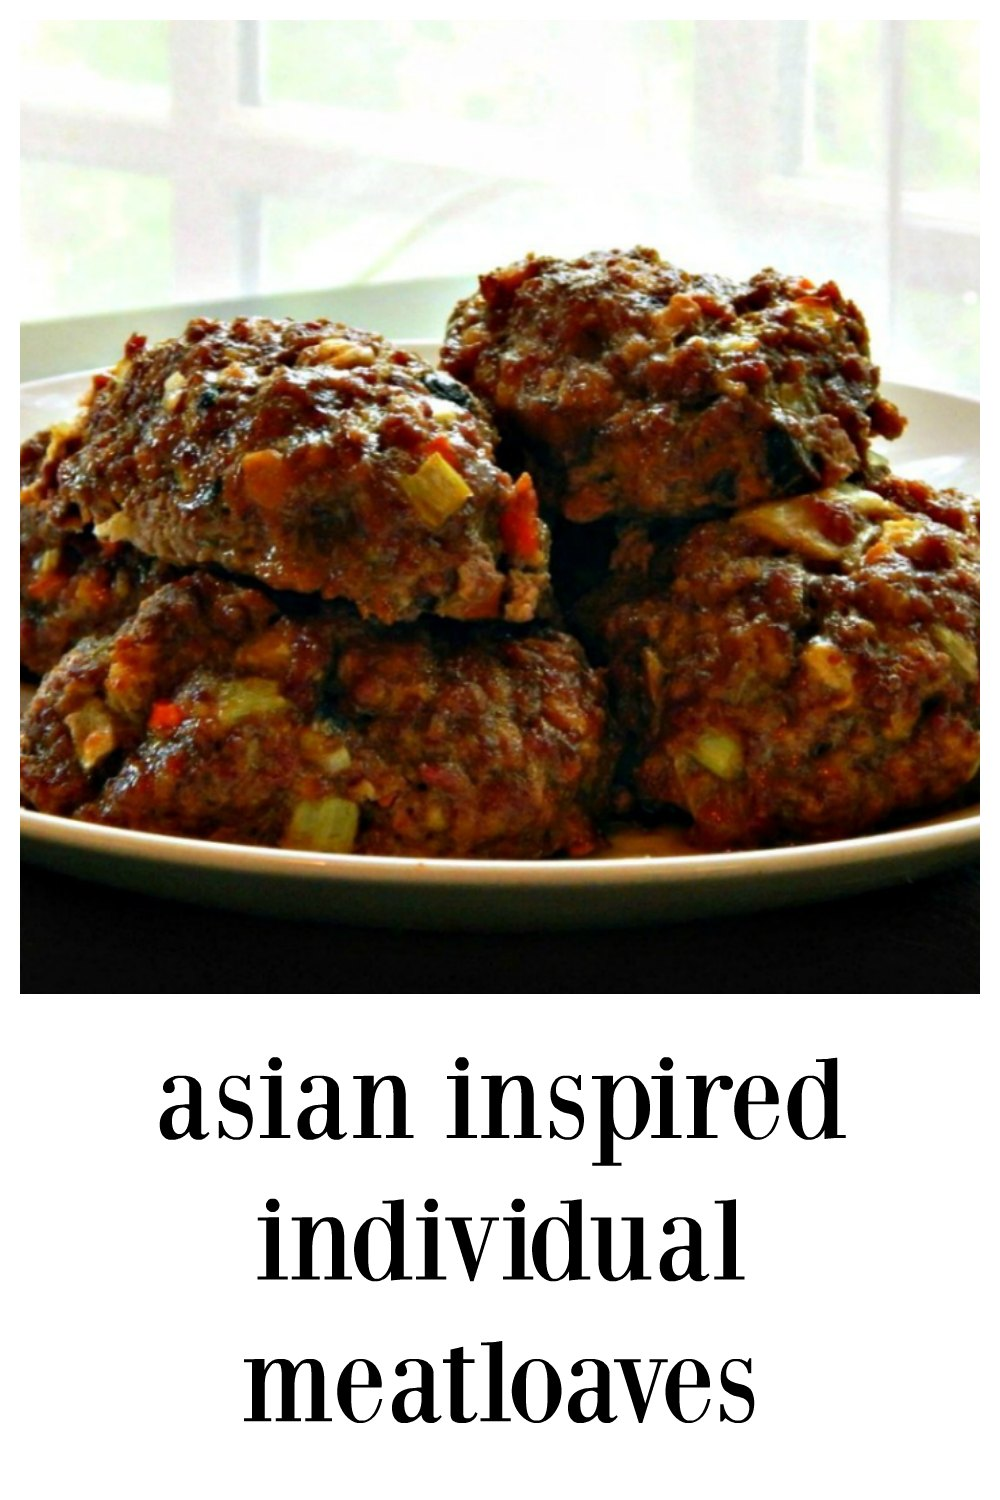 Baby Asian Inspired Individual Meatloaves area crazy cultural mix-up. The gorgeous, crusty exterior gives way to a tender meatloaf with a teriyaki kick. They cook up fast! An under 30 meatloaf! #Meatlof #AsianMeatloaf #IndividualAsainMeatloaf